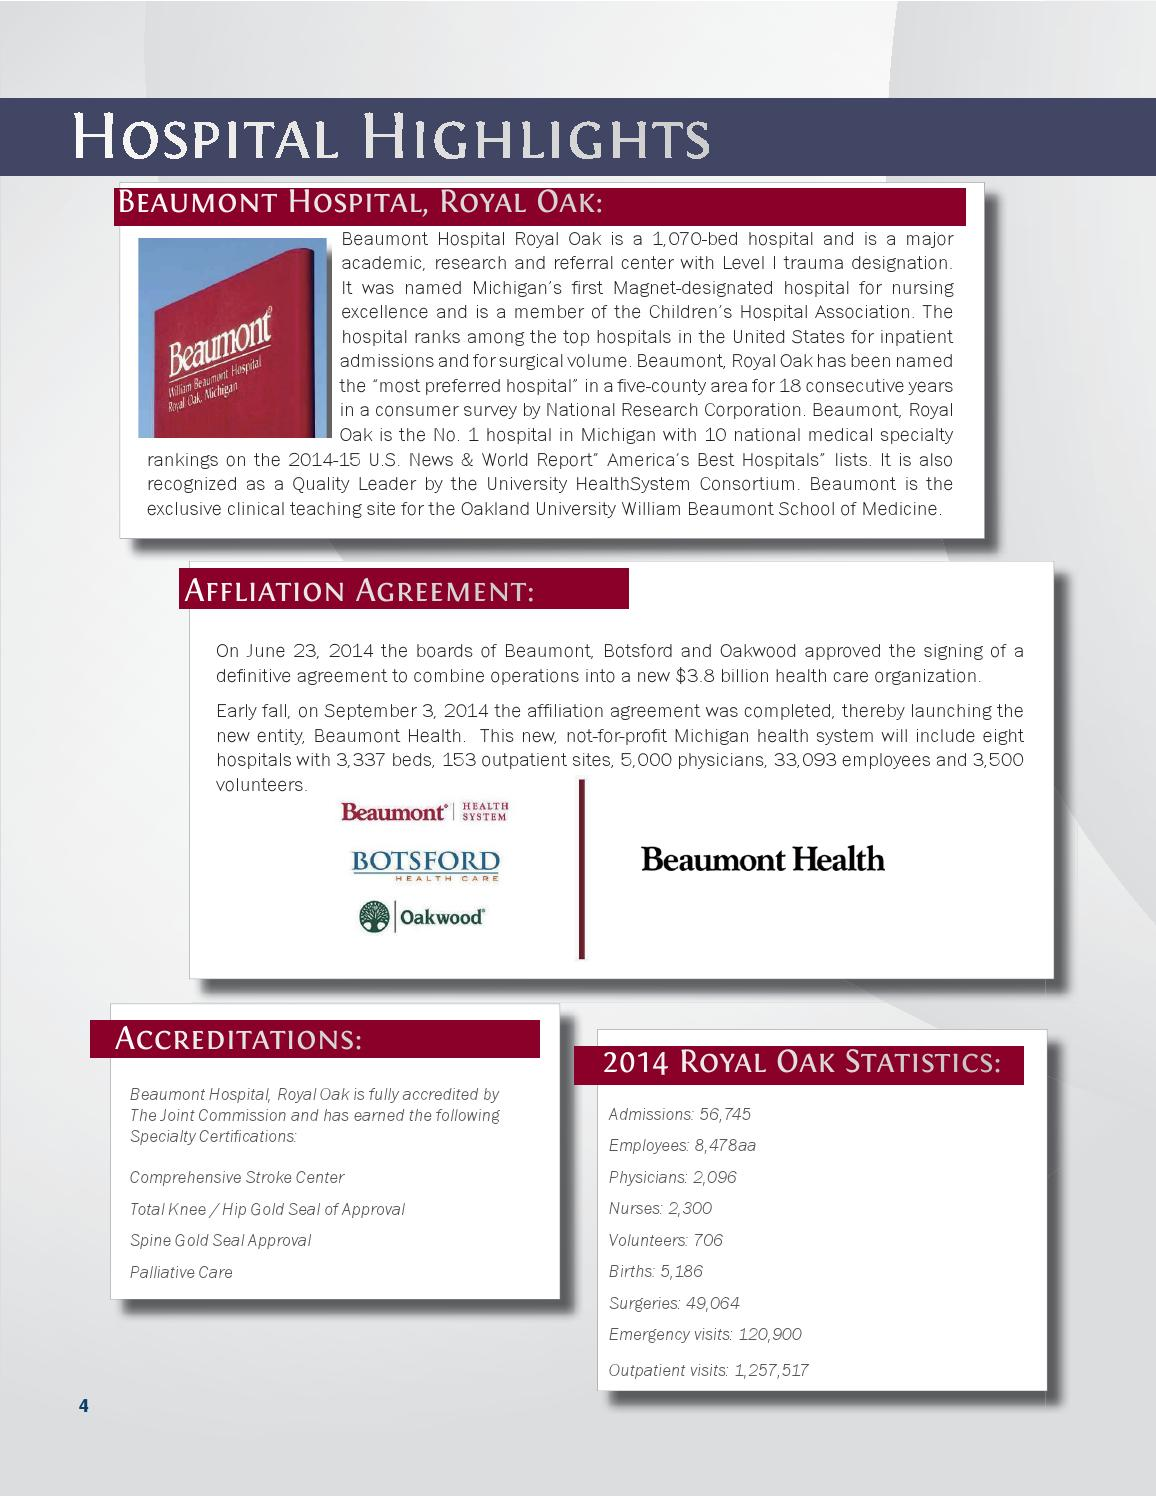 2014 Nursing Annual Report | Beaumont Hospital, Royal Oak by